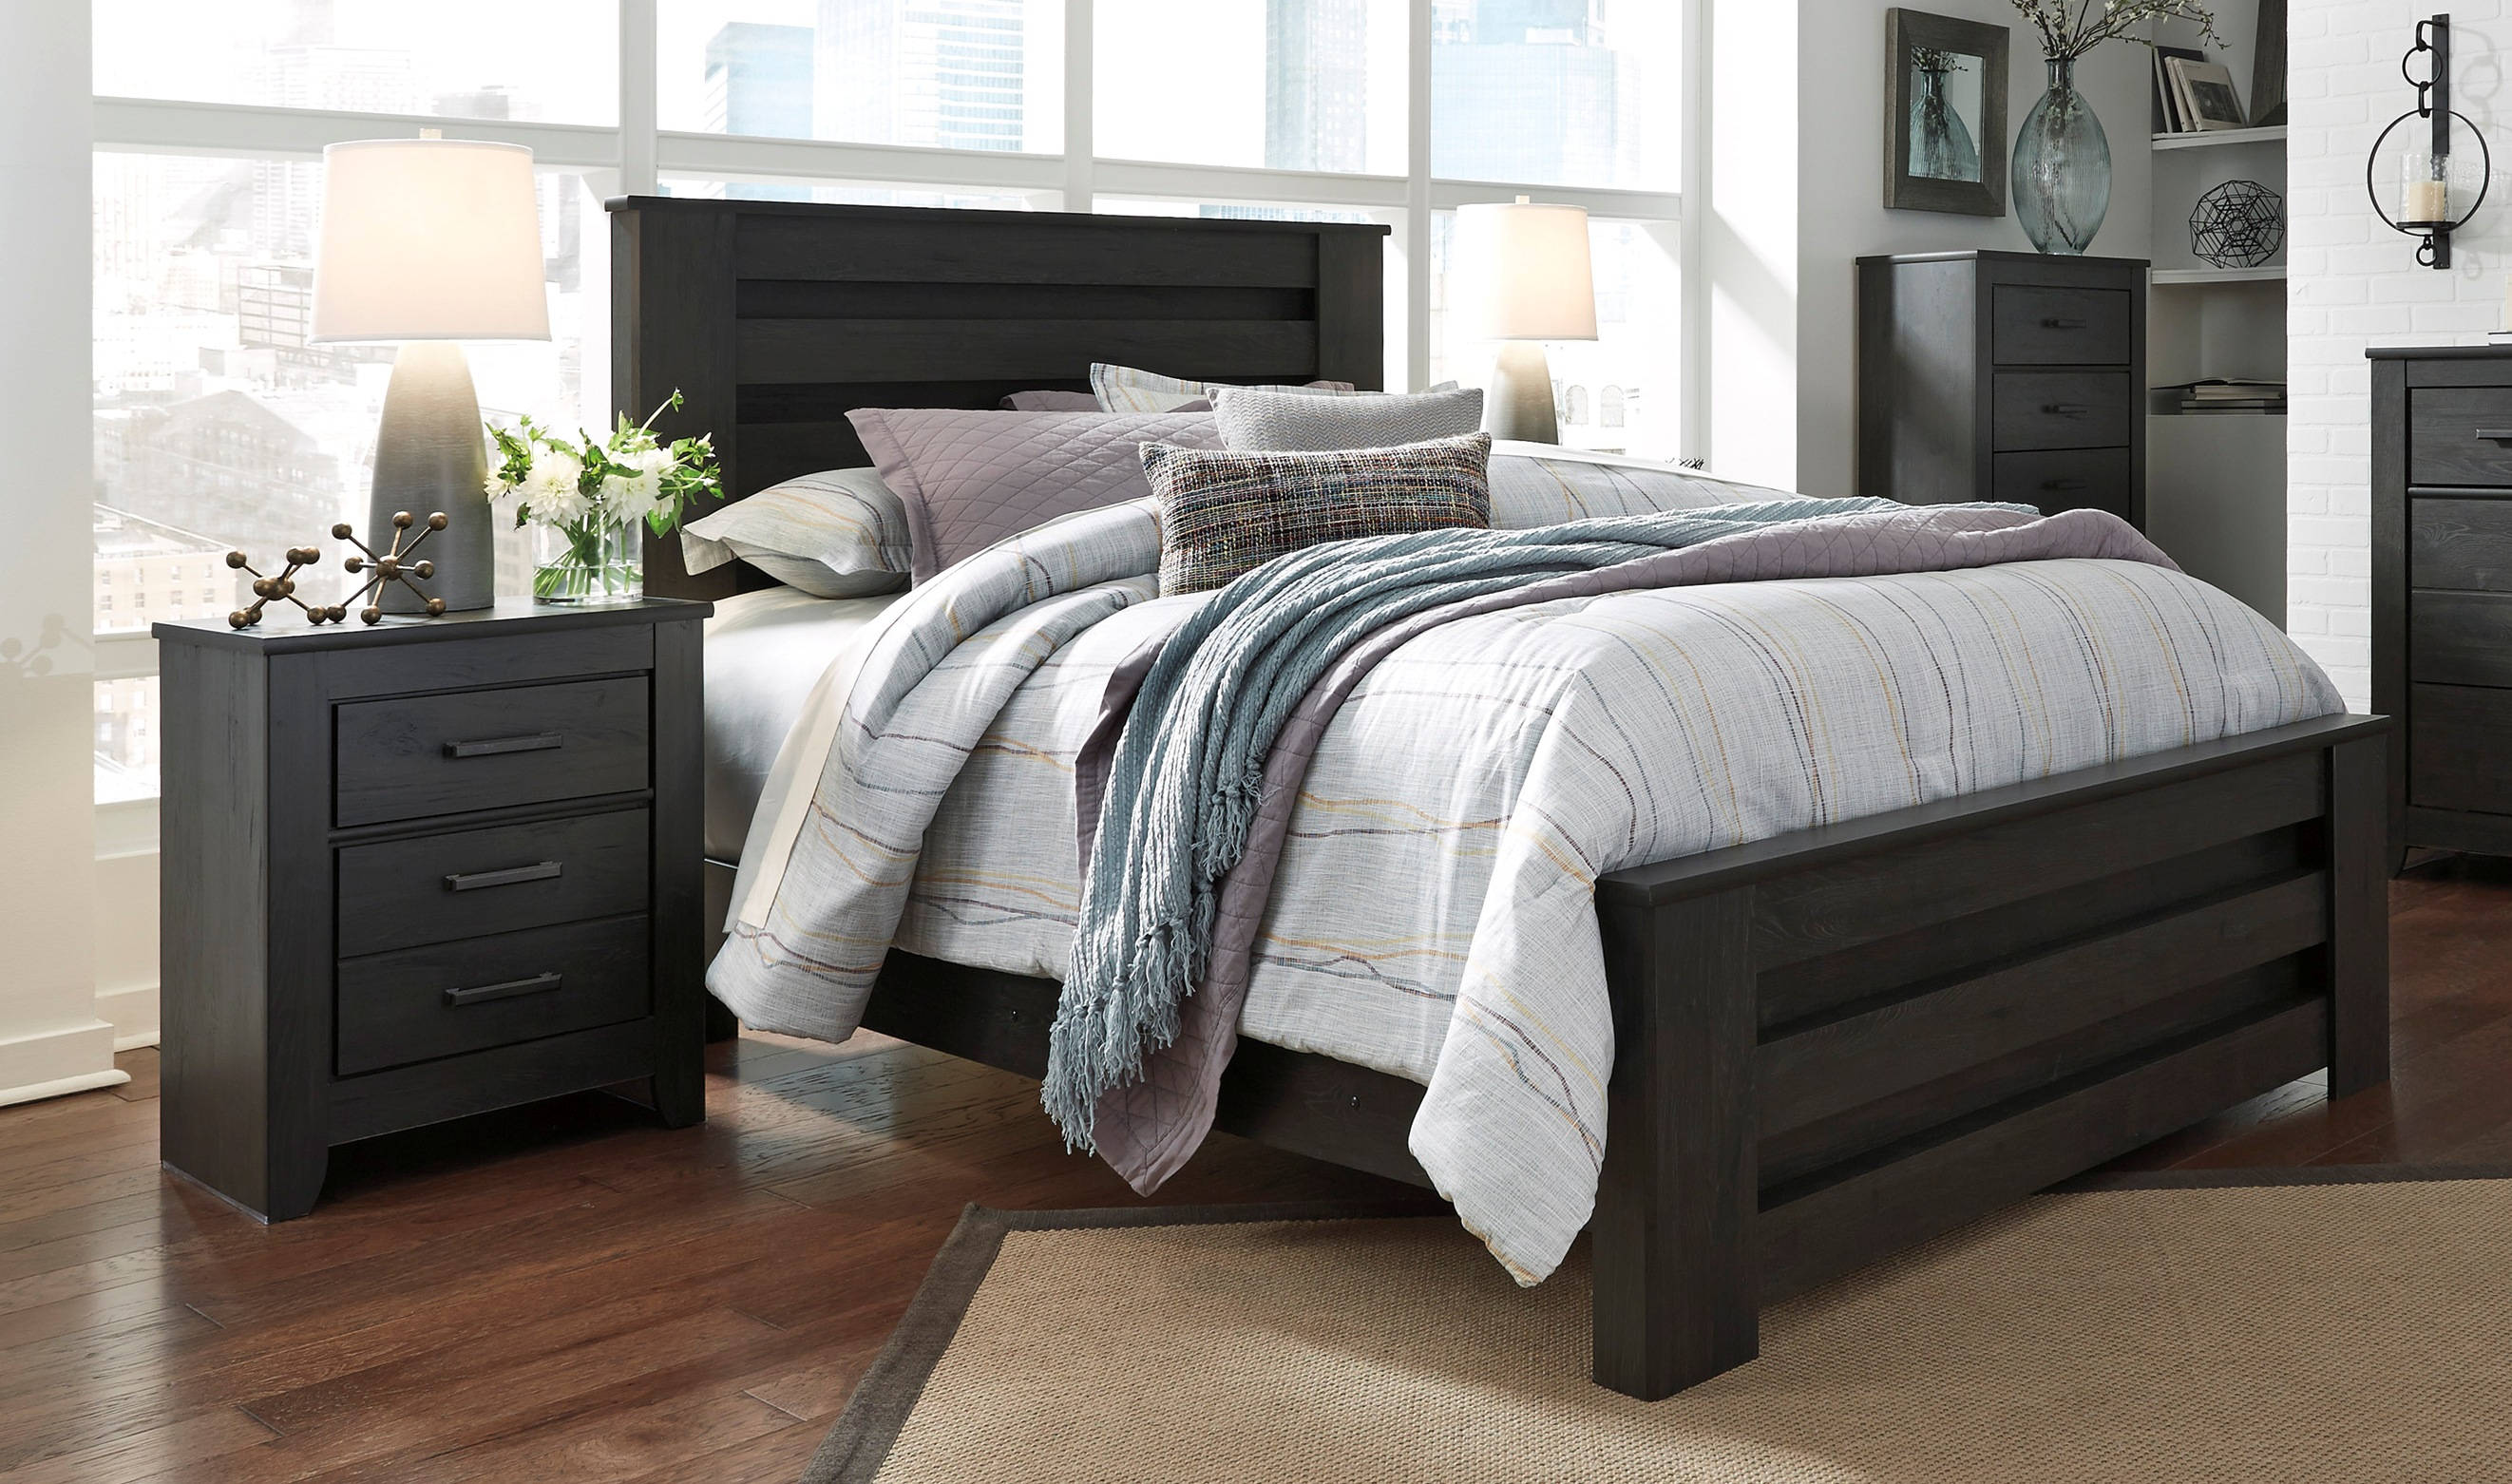 Ashley Furniture Brinxton Black 2pc Bedroom Set With Queen Panel Bed